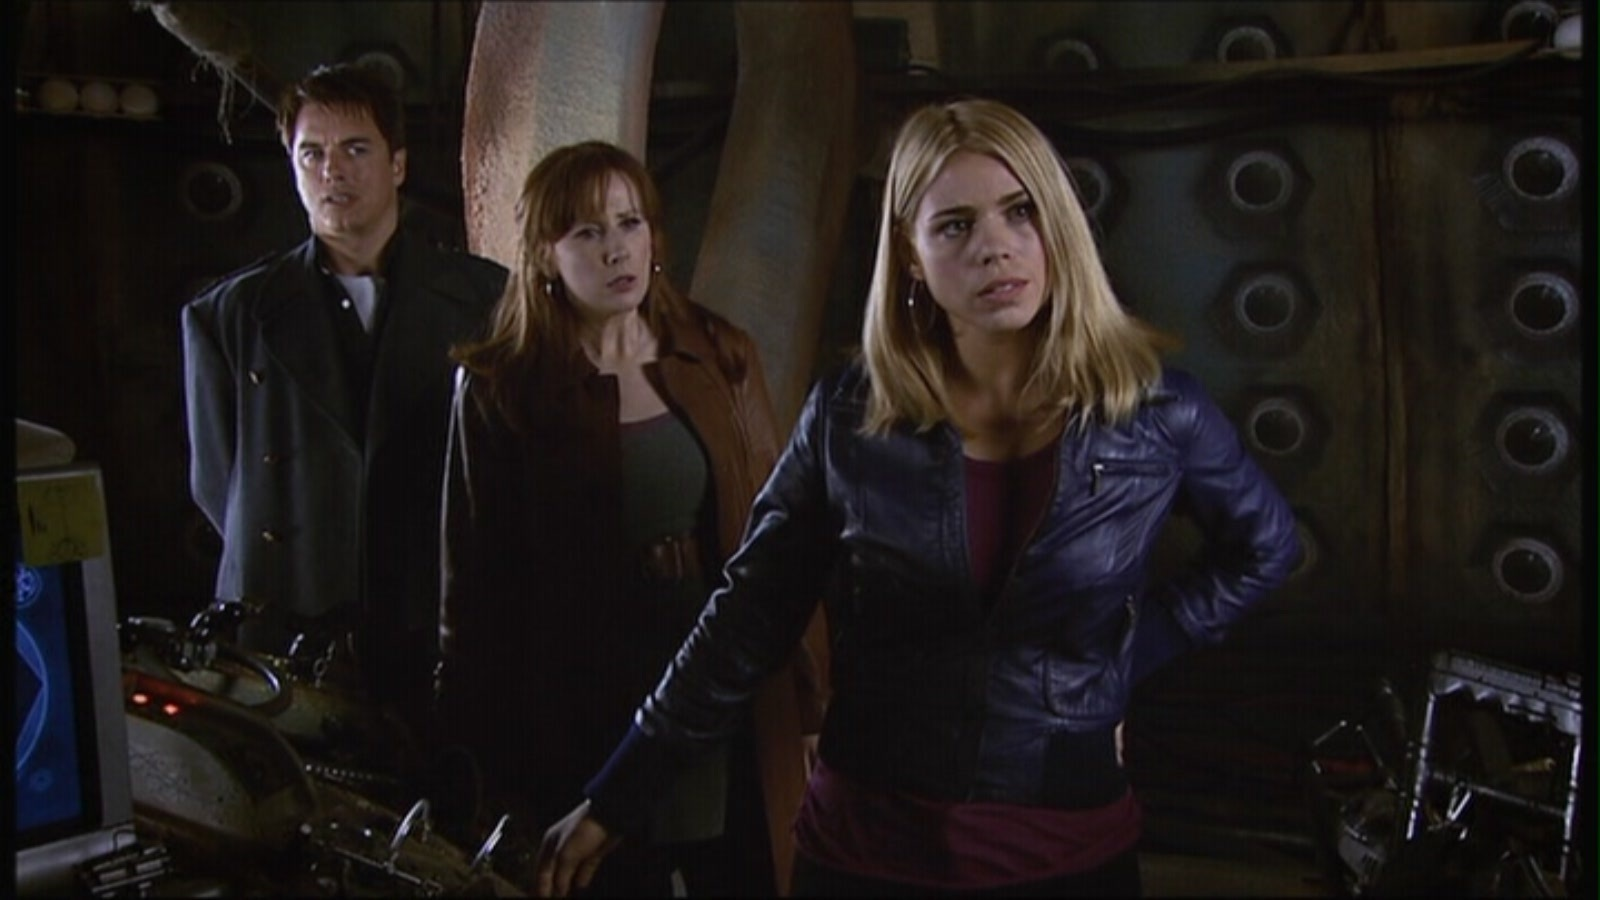 4x13 Journey's End - Doctor Who Image (21314815) - Fanpop